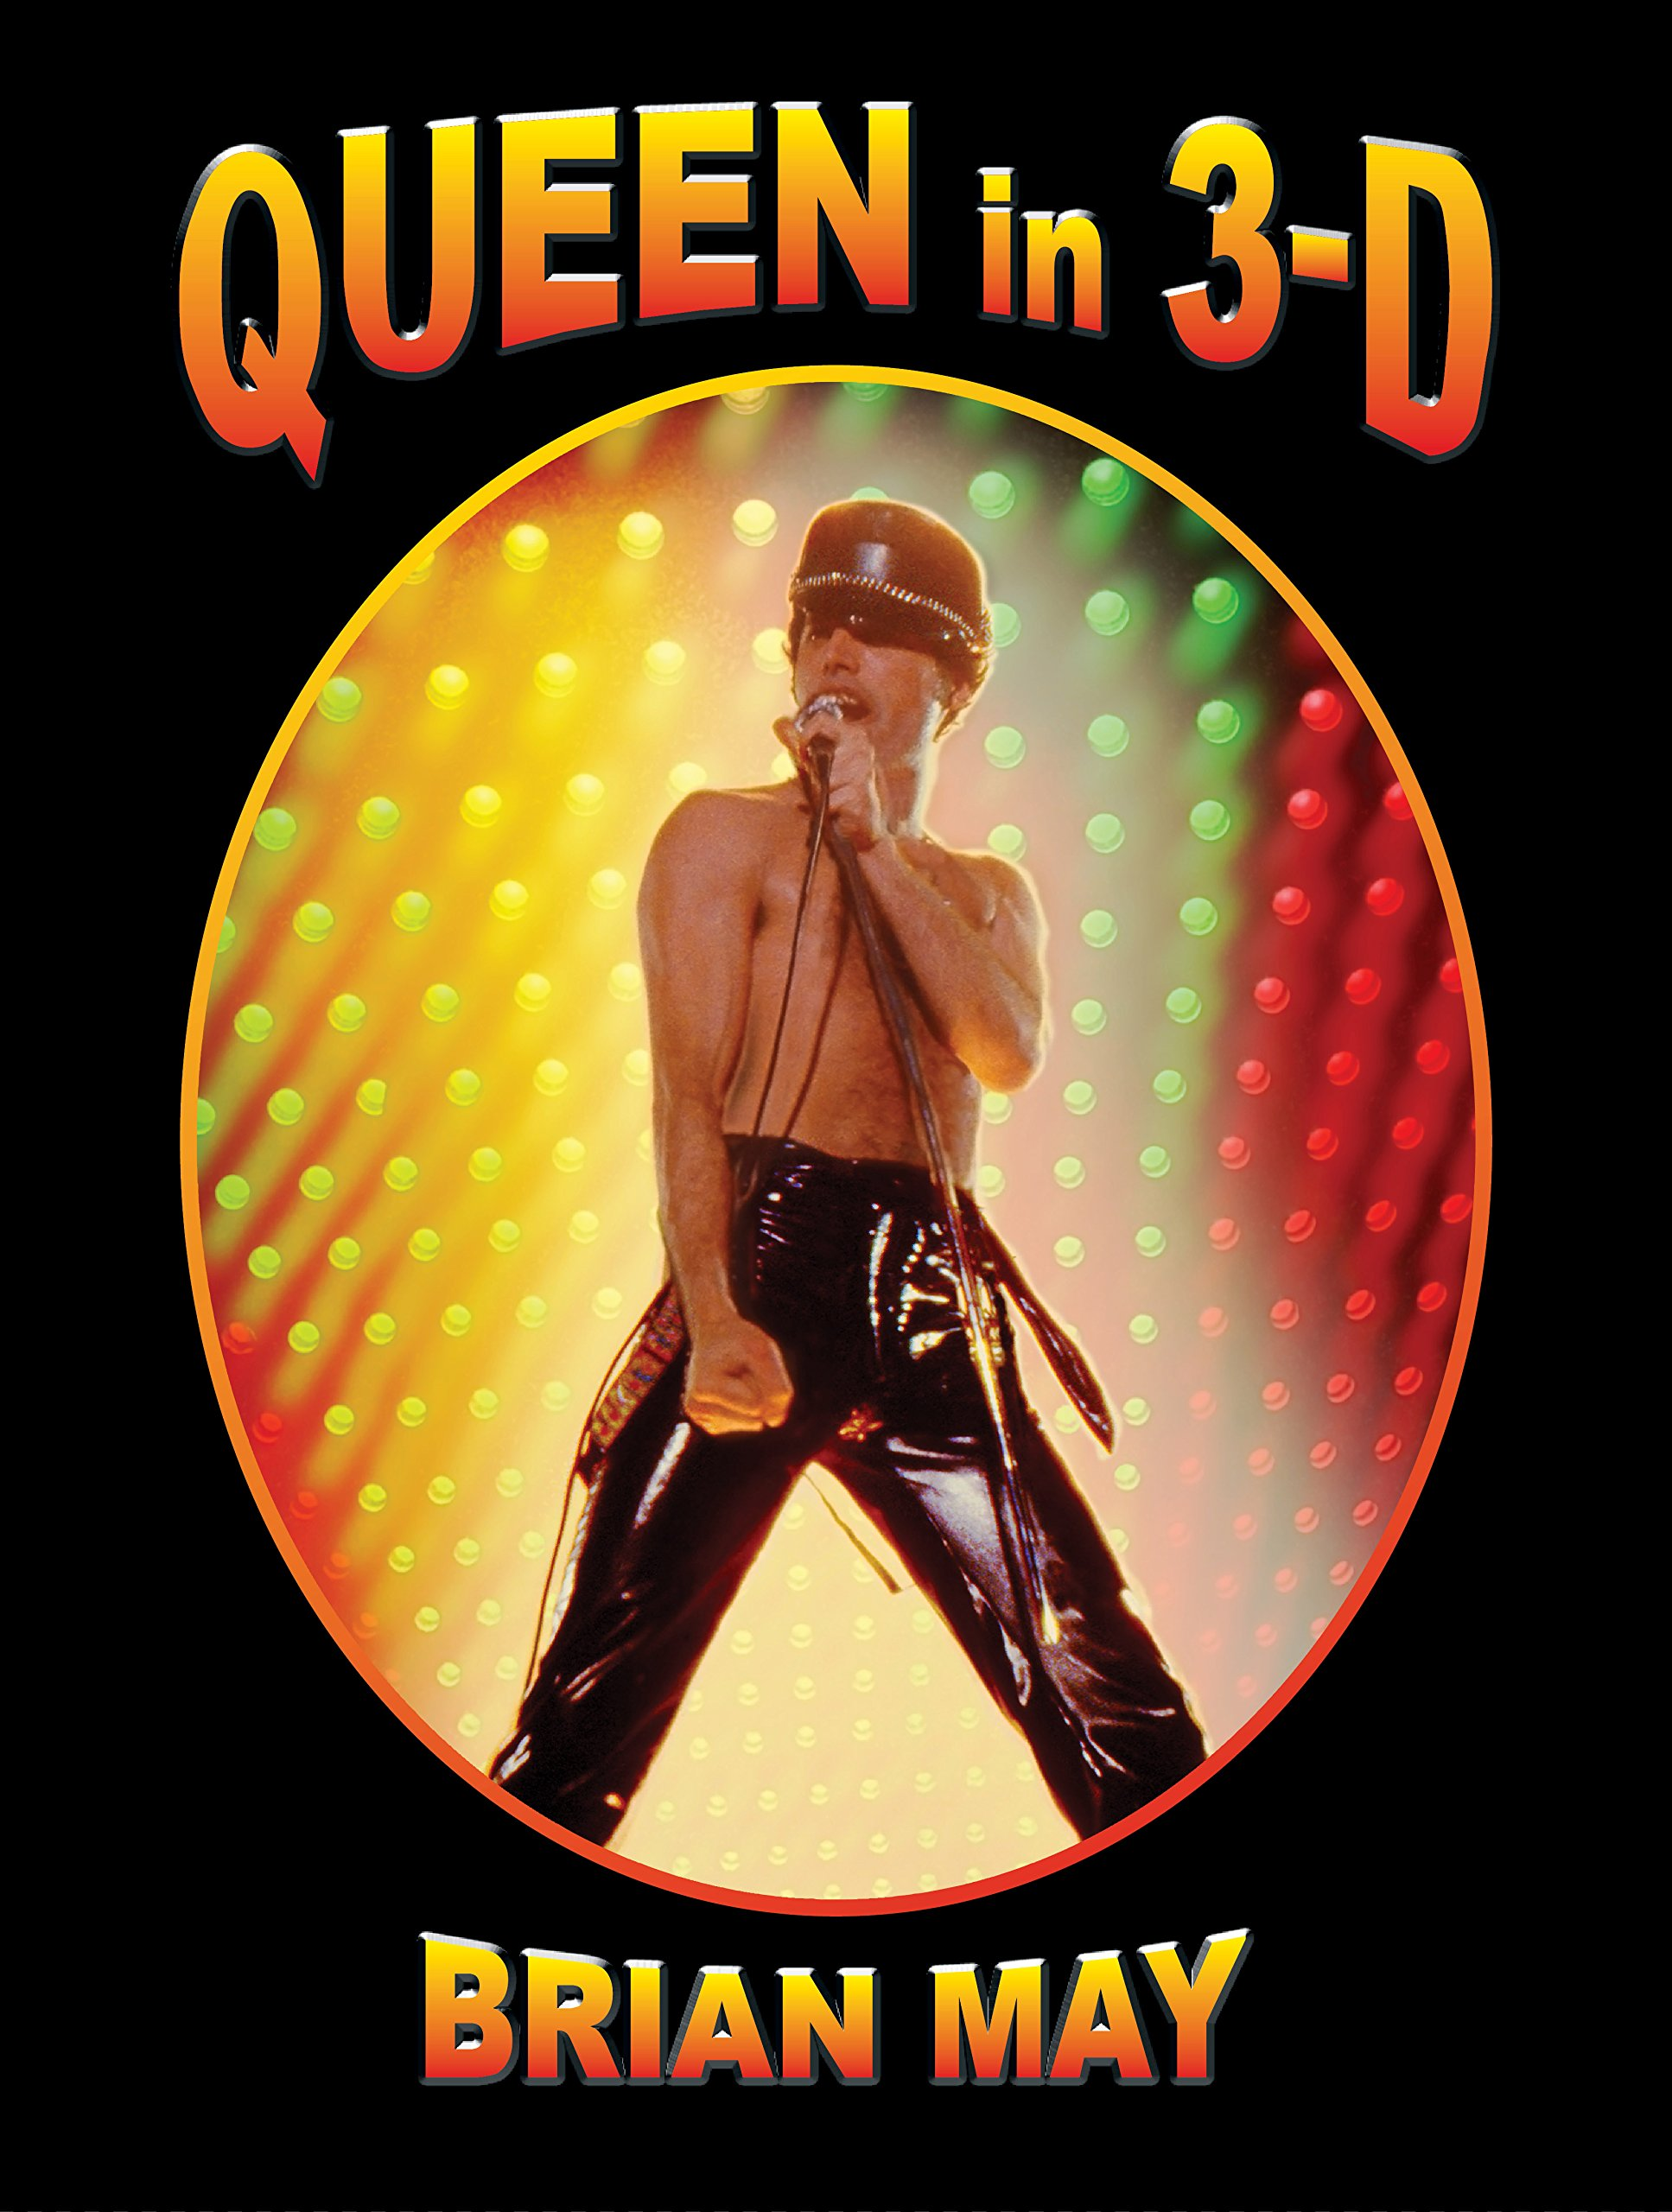 Queen in 3D Slipcased Edition (3-D Stereoscopic Book)